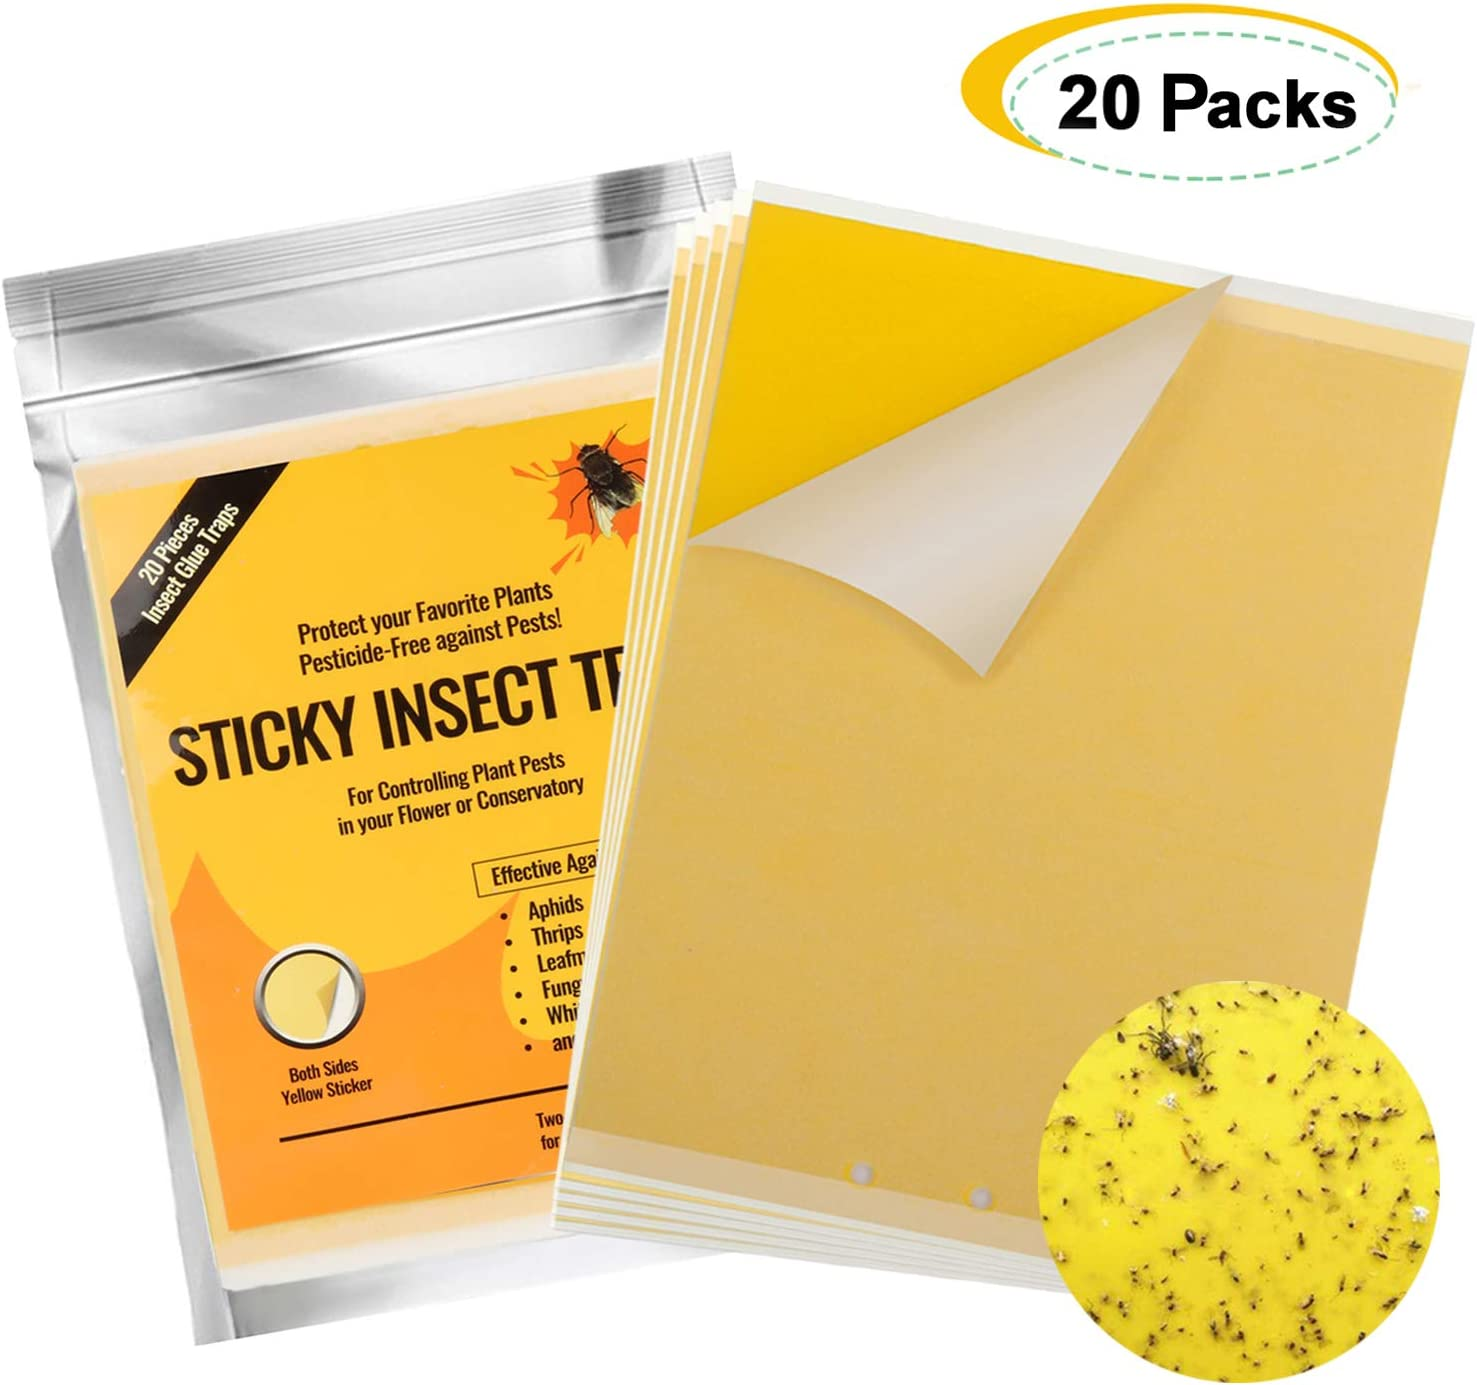 Karvipark 20 Packs Fly Trap, Dual Sided Yellow Sticky Traps, Plant Flycatchers for against Flying Plant Insect, Fungus Gnats, Whiteflies, Aphids, Leafminers